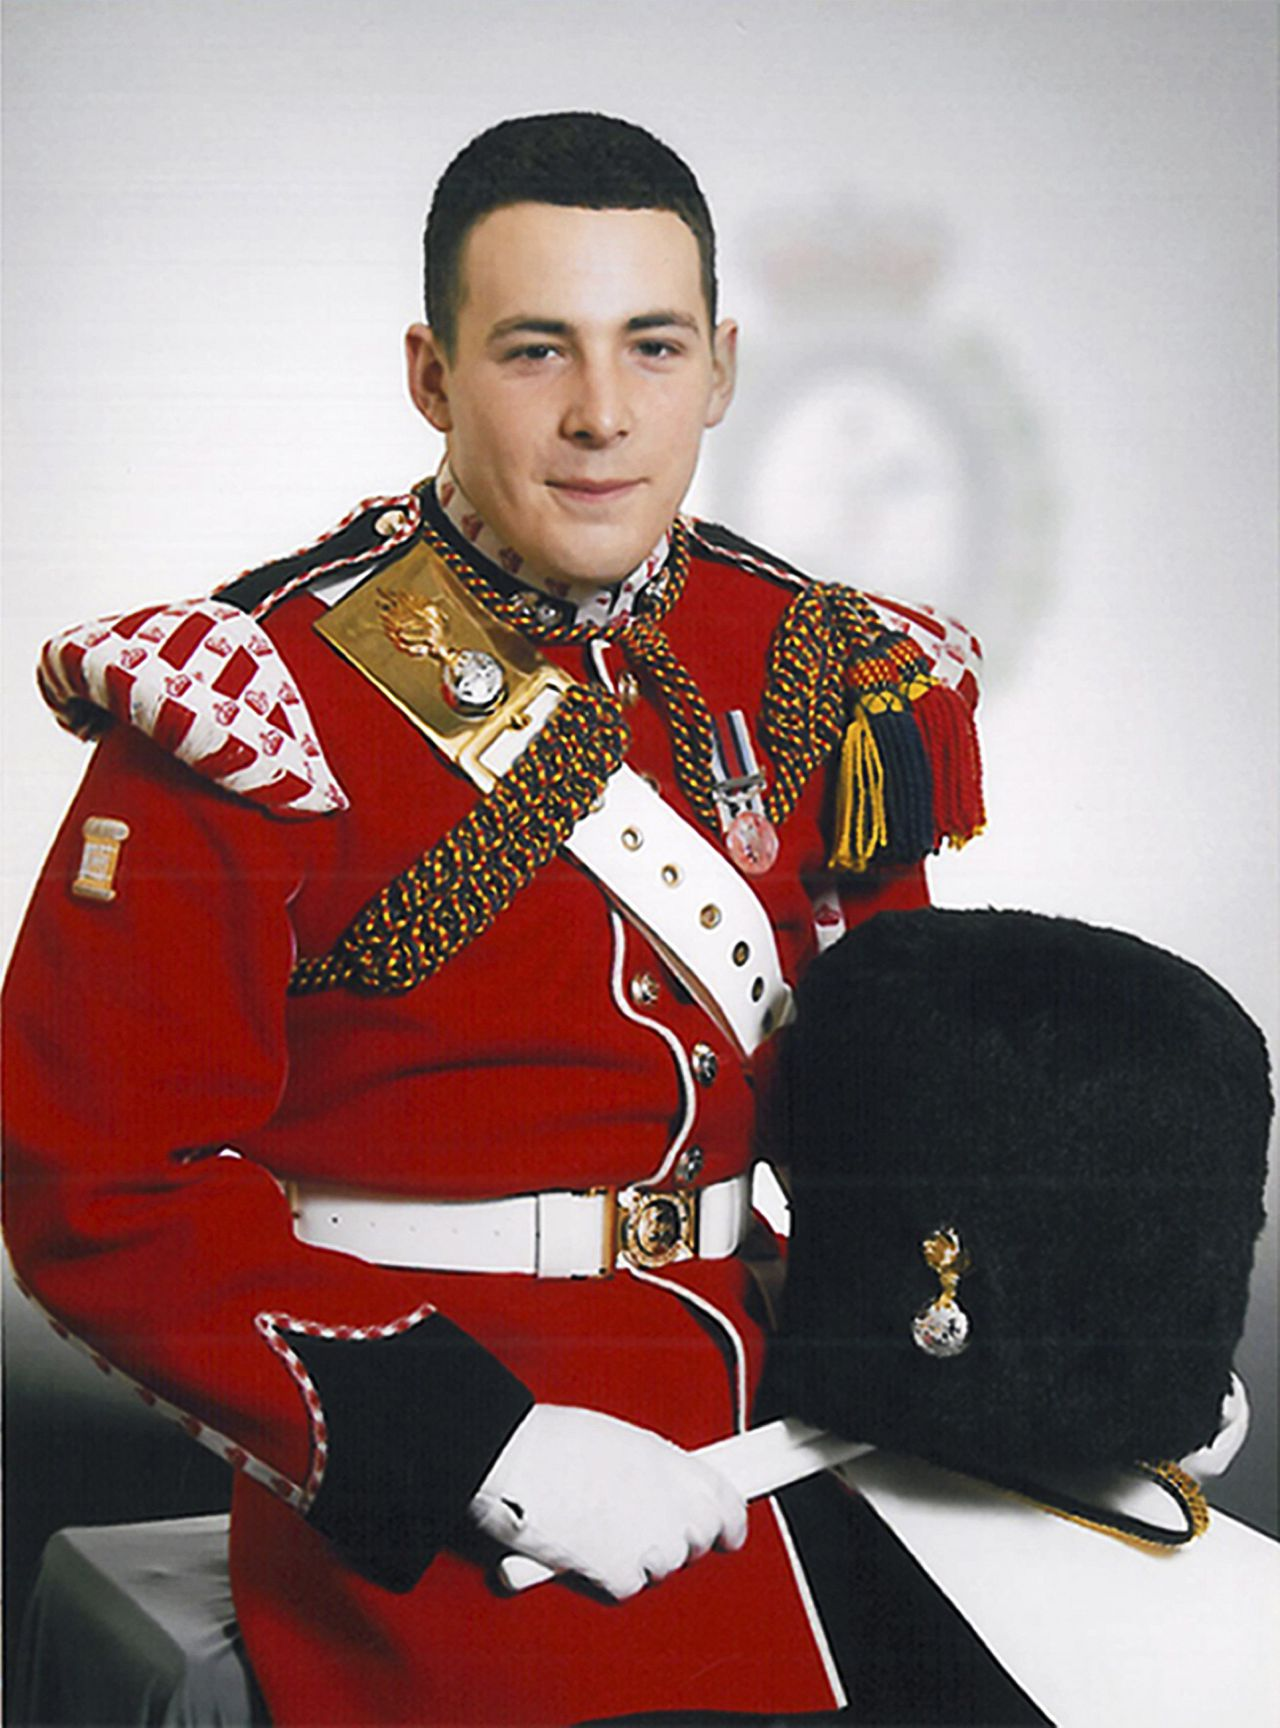 ATTENTION EDITORS - QUALITY REPEAT Drummer Lee Rigby, of the British Army's 2nd Battalion The Royal Regiment of Fusiliers, is seen in an undated photo released May 23, 2013. Rigby was killed May 22 in an attack by two men in Woolwich, southeast London, the Ministry of Defence said on Thursday. REUTERS/Ministry of Defence/Crown Copyright/Handout (BRITAIN - Tags: MILITARY OBITUARY CIVIL UNREST CRIME LAW TPX IMAGES OF THE DAY) ATTENTION EDITORS - THIS IMAGE WAS PROVIDED BY A THIRD PARTY. FOR EDITORIAL USE ONLY. NOT FOR SALE FOR MARKETING OR ADVERTISING CAMPAIGNS. THIS PICTURE IS DISTRIBUTED EXACTLY AS RECEIVED BY REUTERS, AS A SERVICE TO CLIENTS